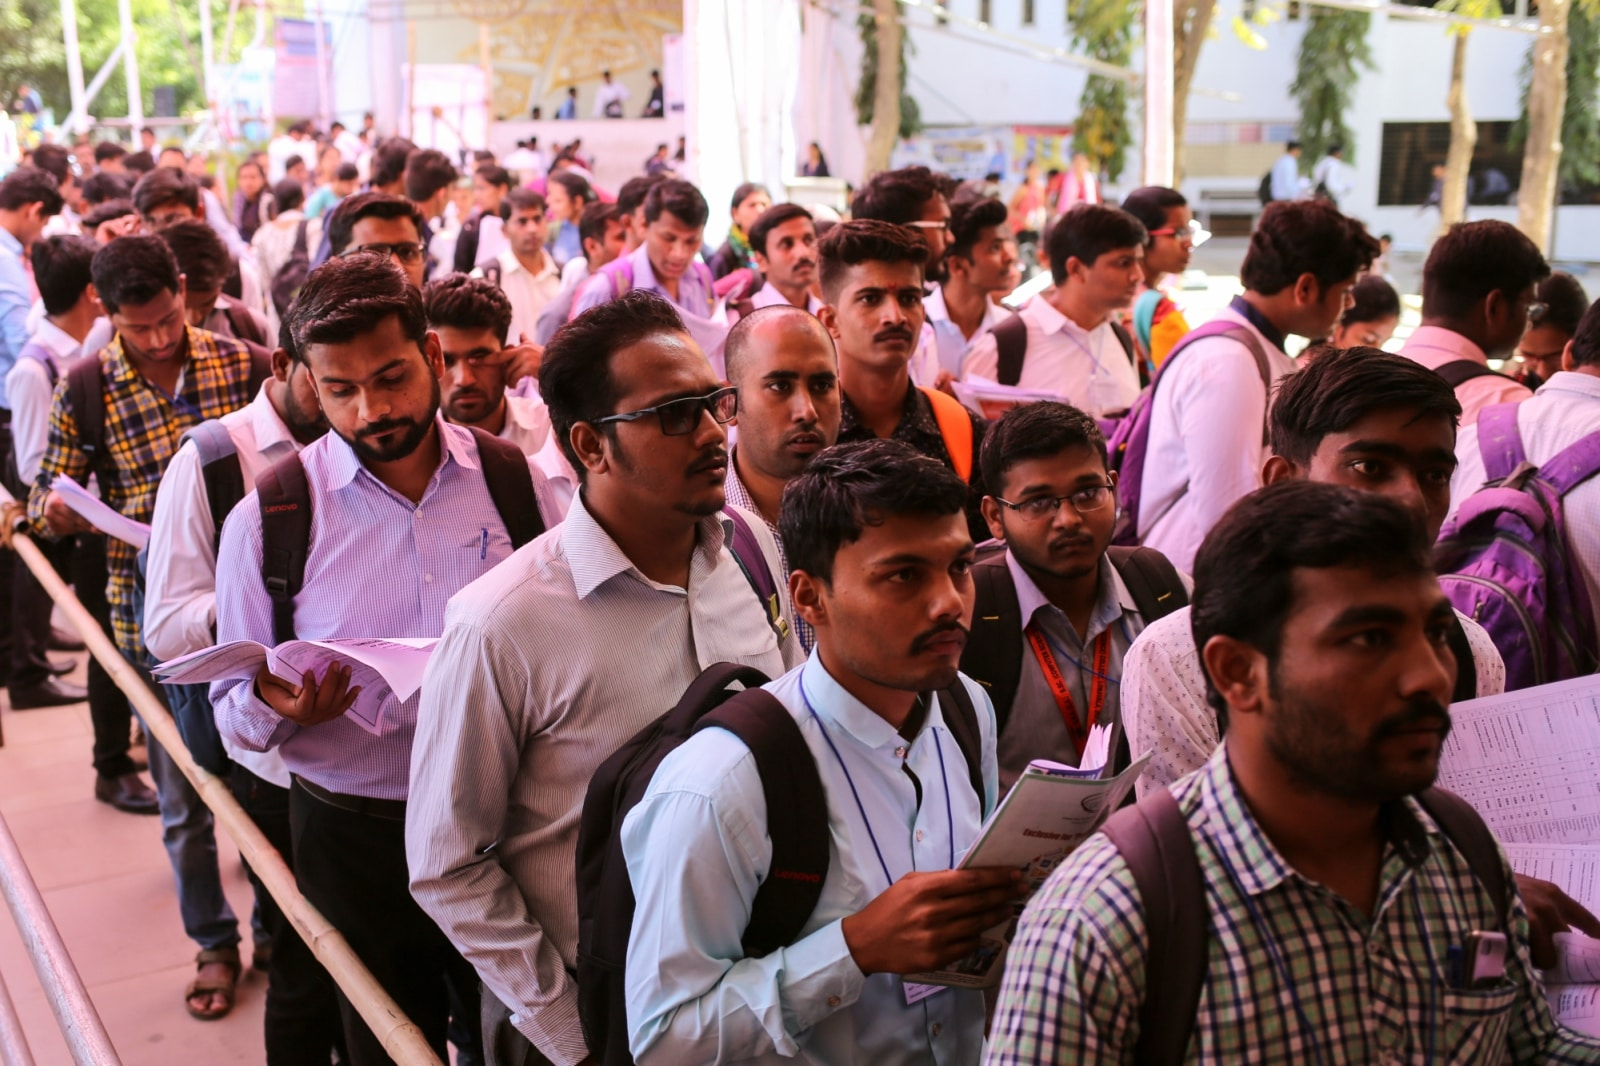 Job seekers line up for interviews at a job fair in Chinchwad, February 7, 2019. REUTERS/Danish Siddiqui/Files